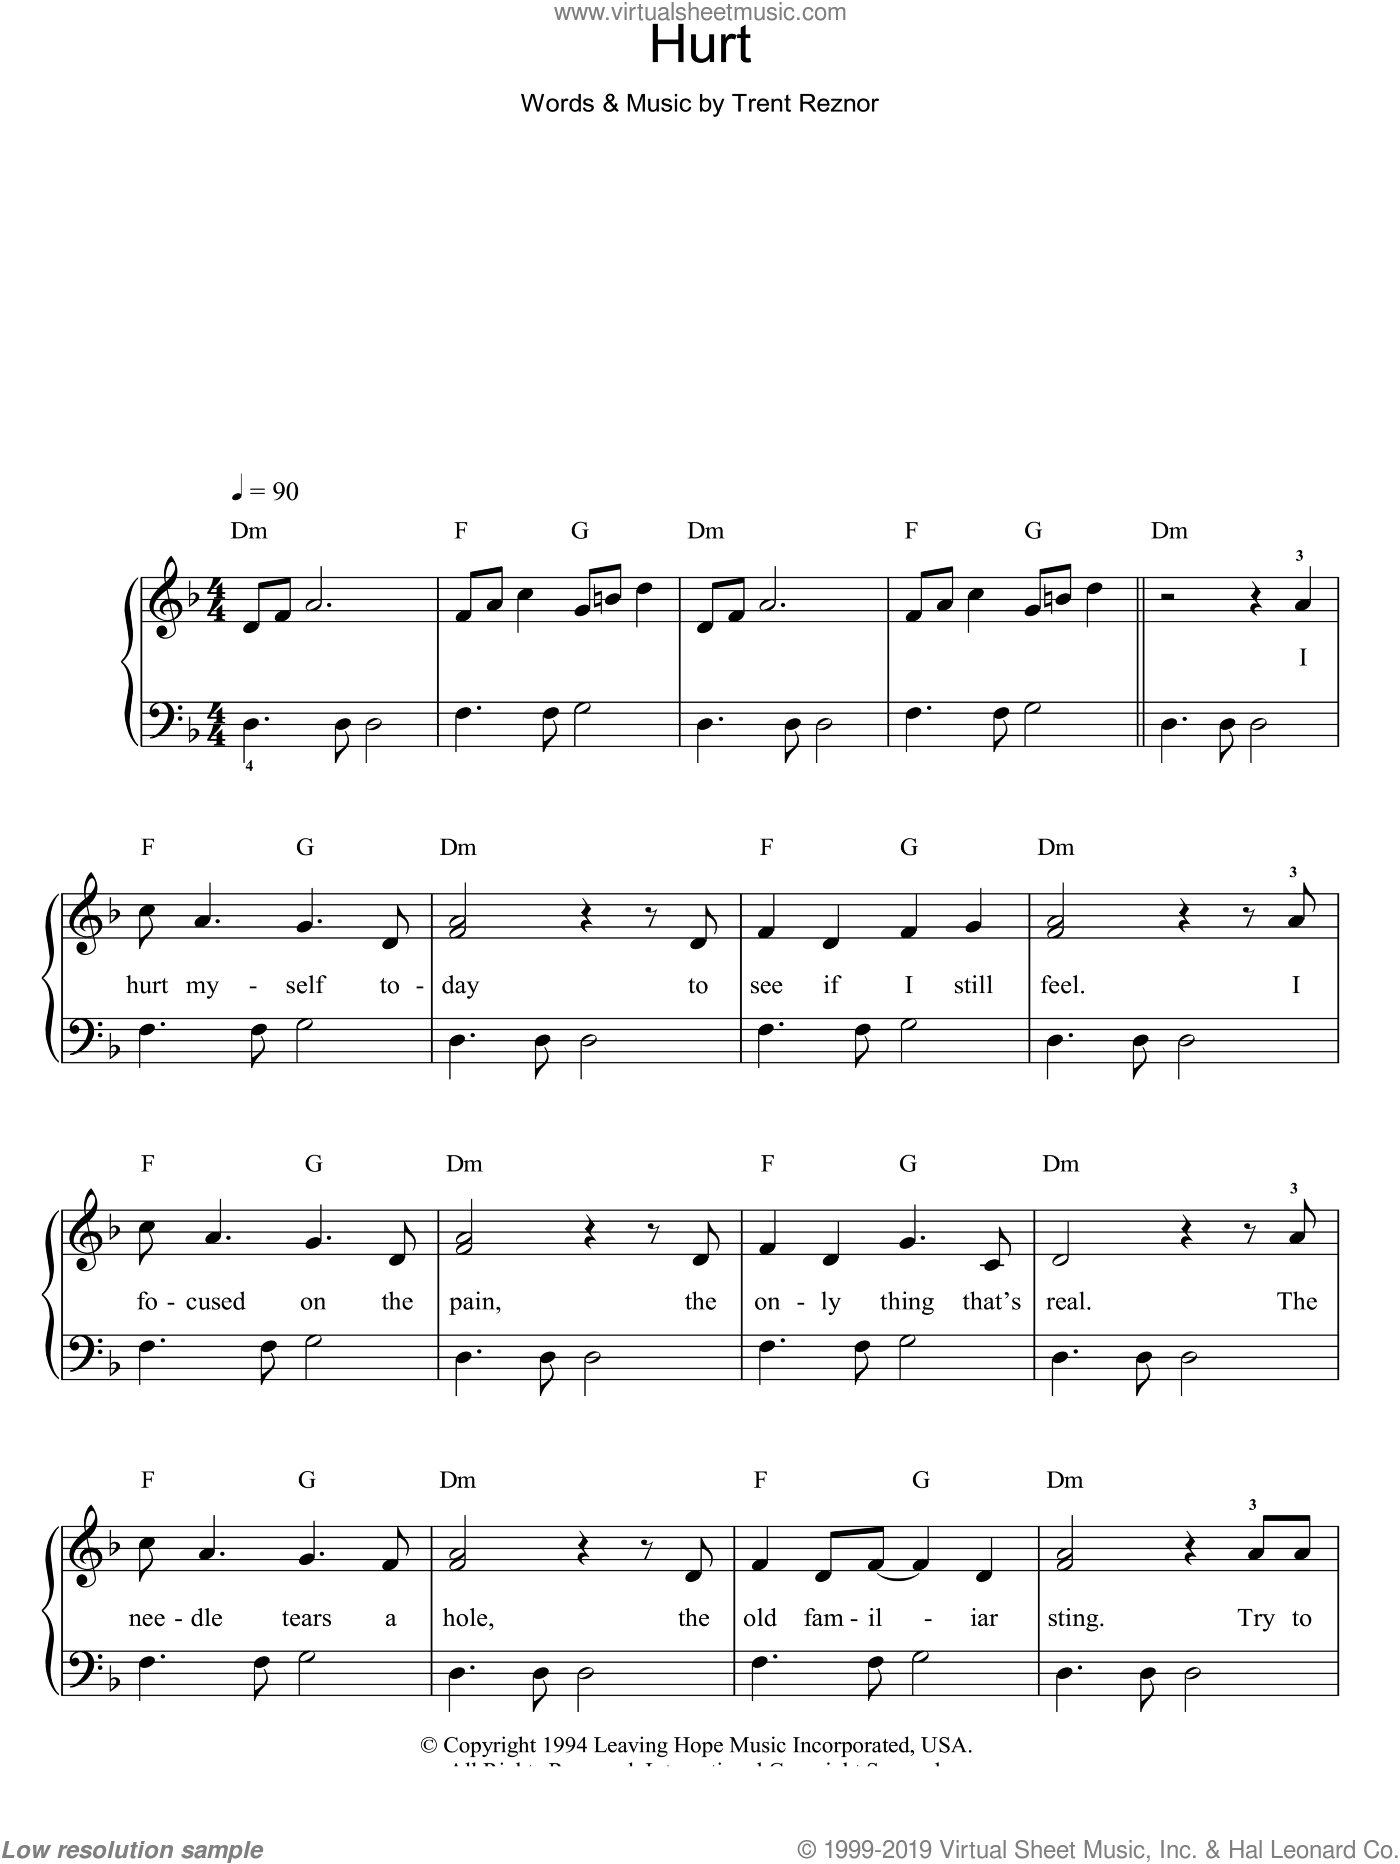 Hurt sheet music for piano solo (chords) by Trent Reznor